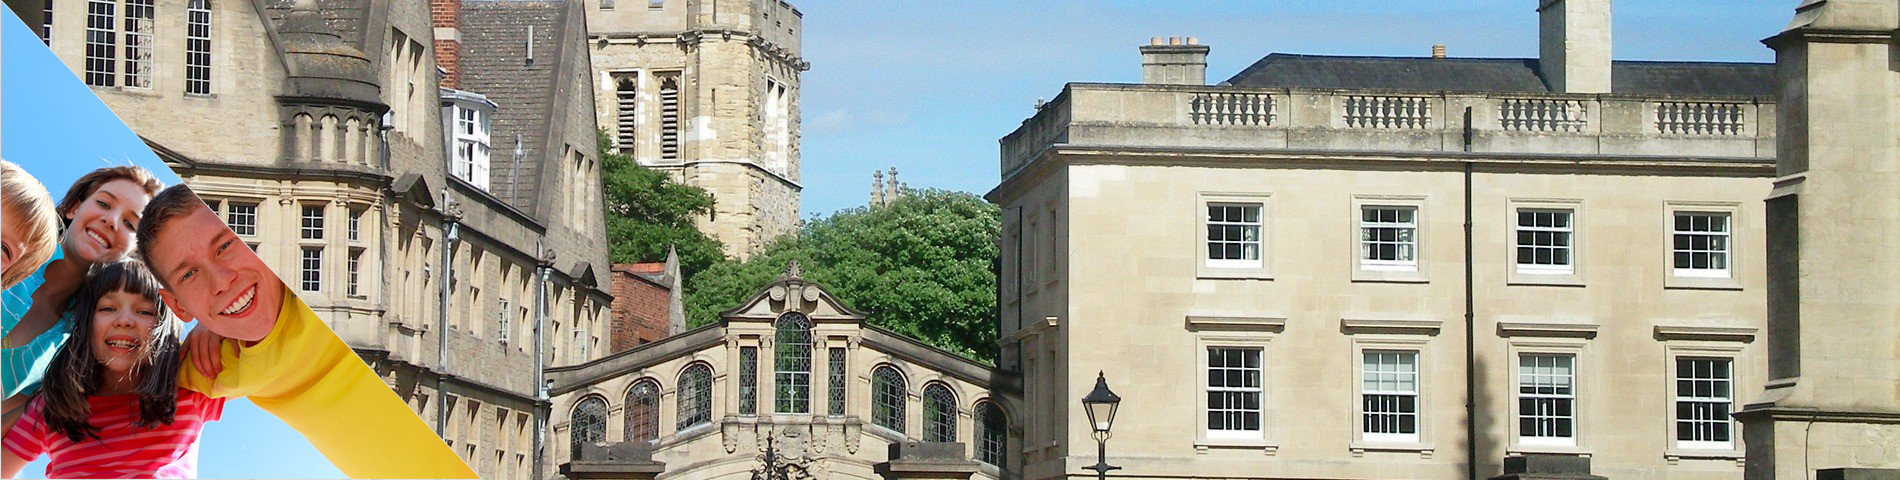 Oxford - Curso Júnior (6-18 anos)